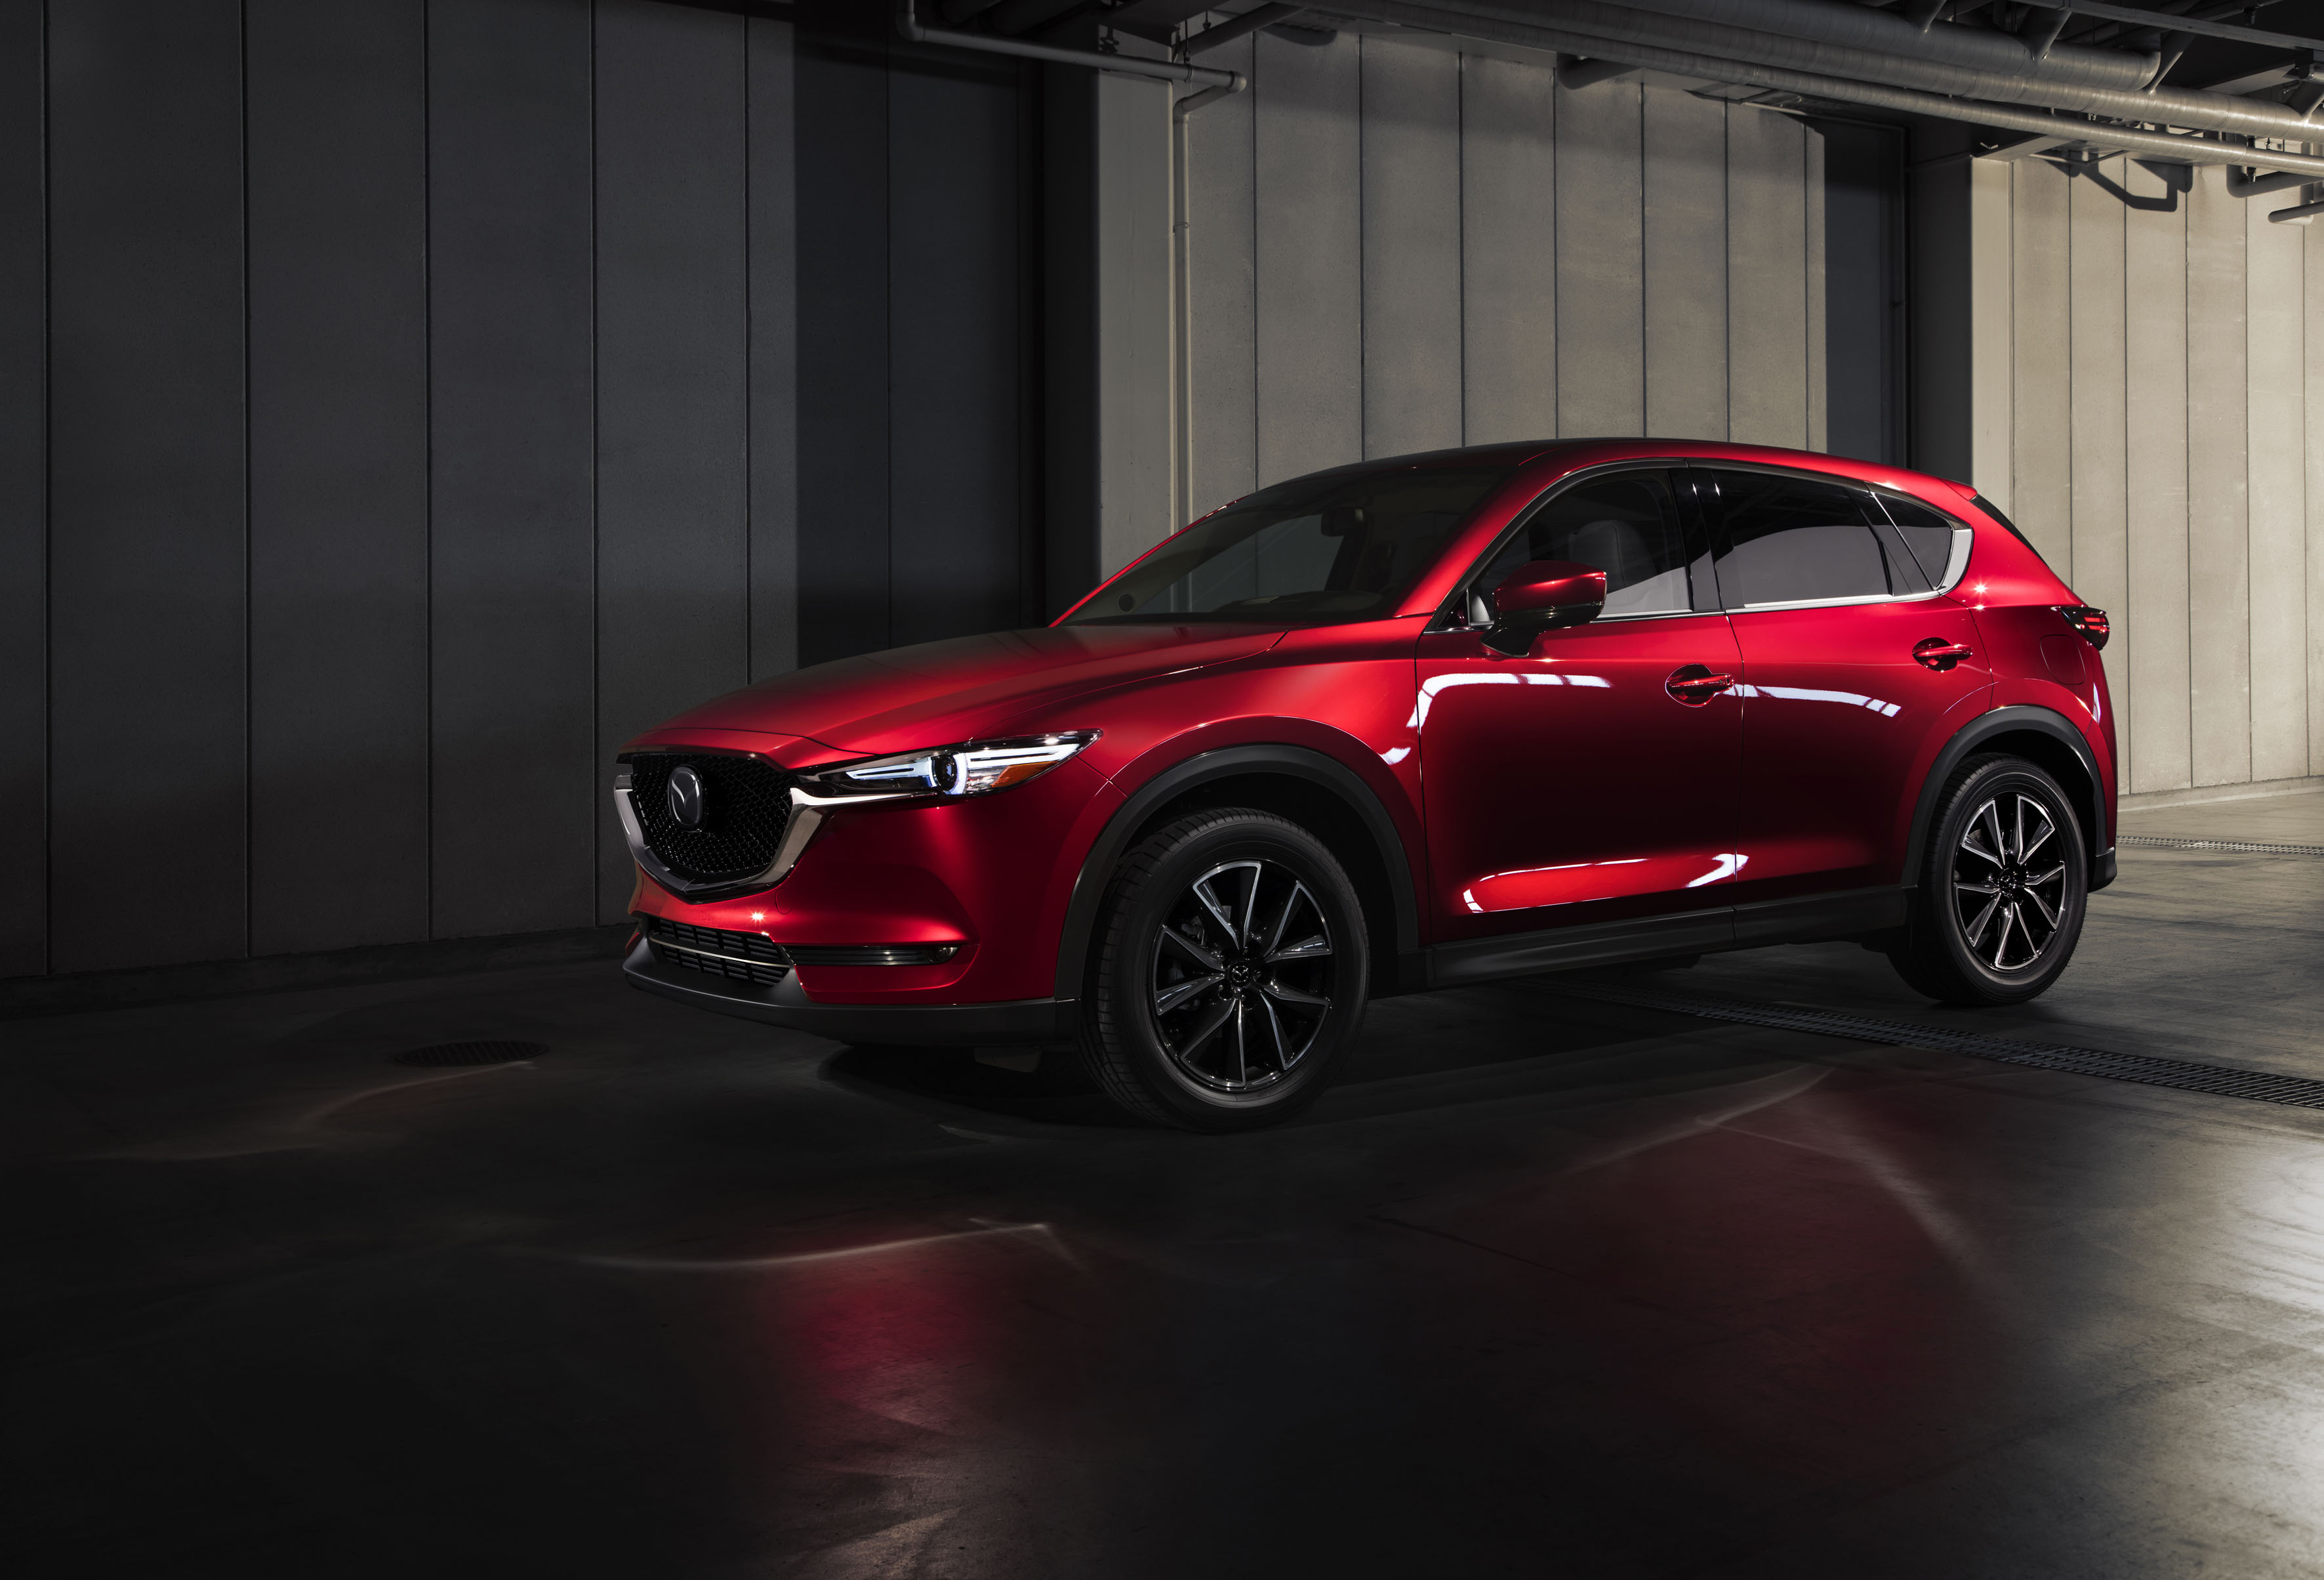 md mazda motorweek htm best news by in new hagerstown utility large named cx dealership sharrett